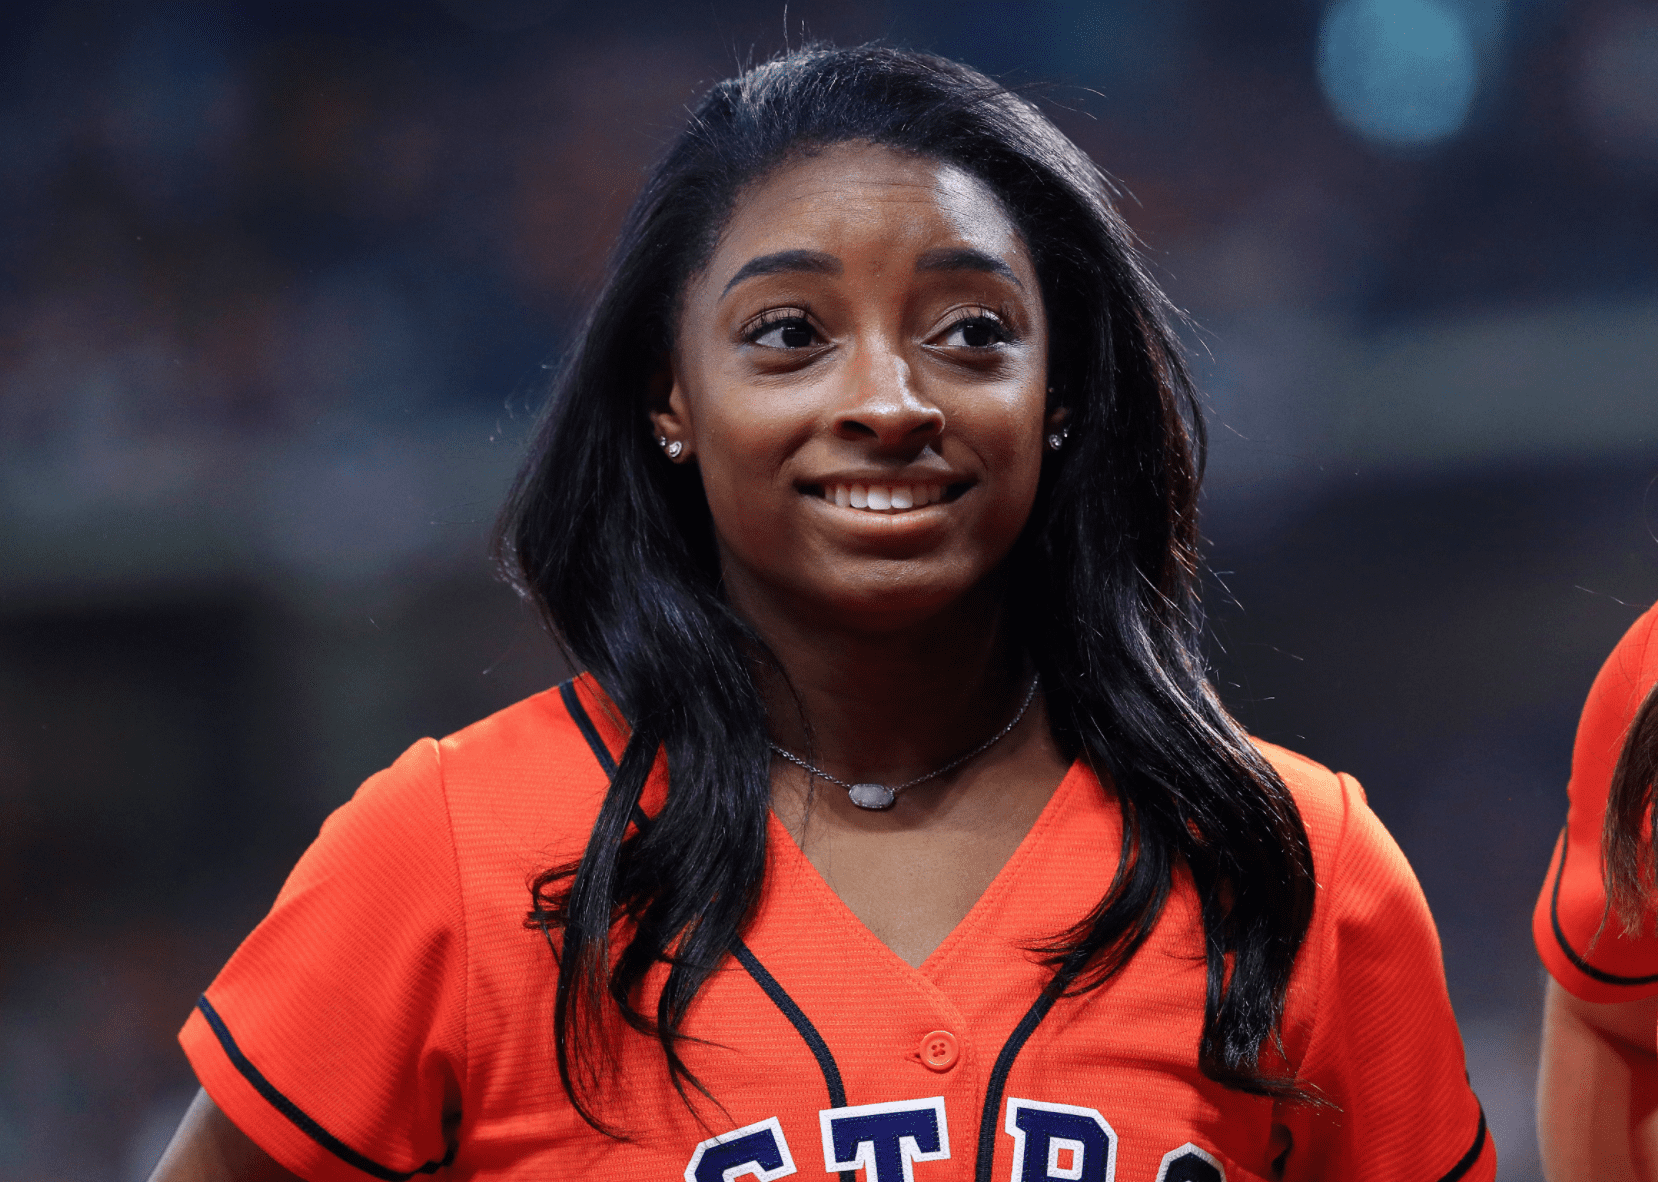 Simone Biles at a game between the Houston Astros and the Washington Nationals on October 23, 2019. | Photo: Getty Images